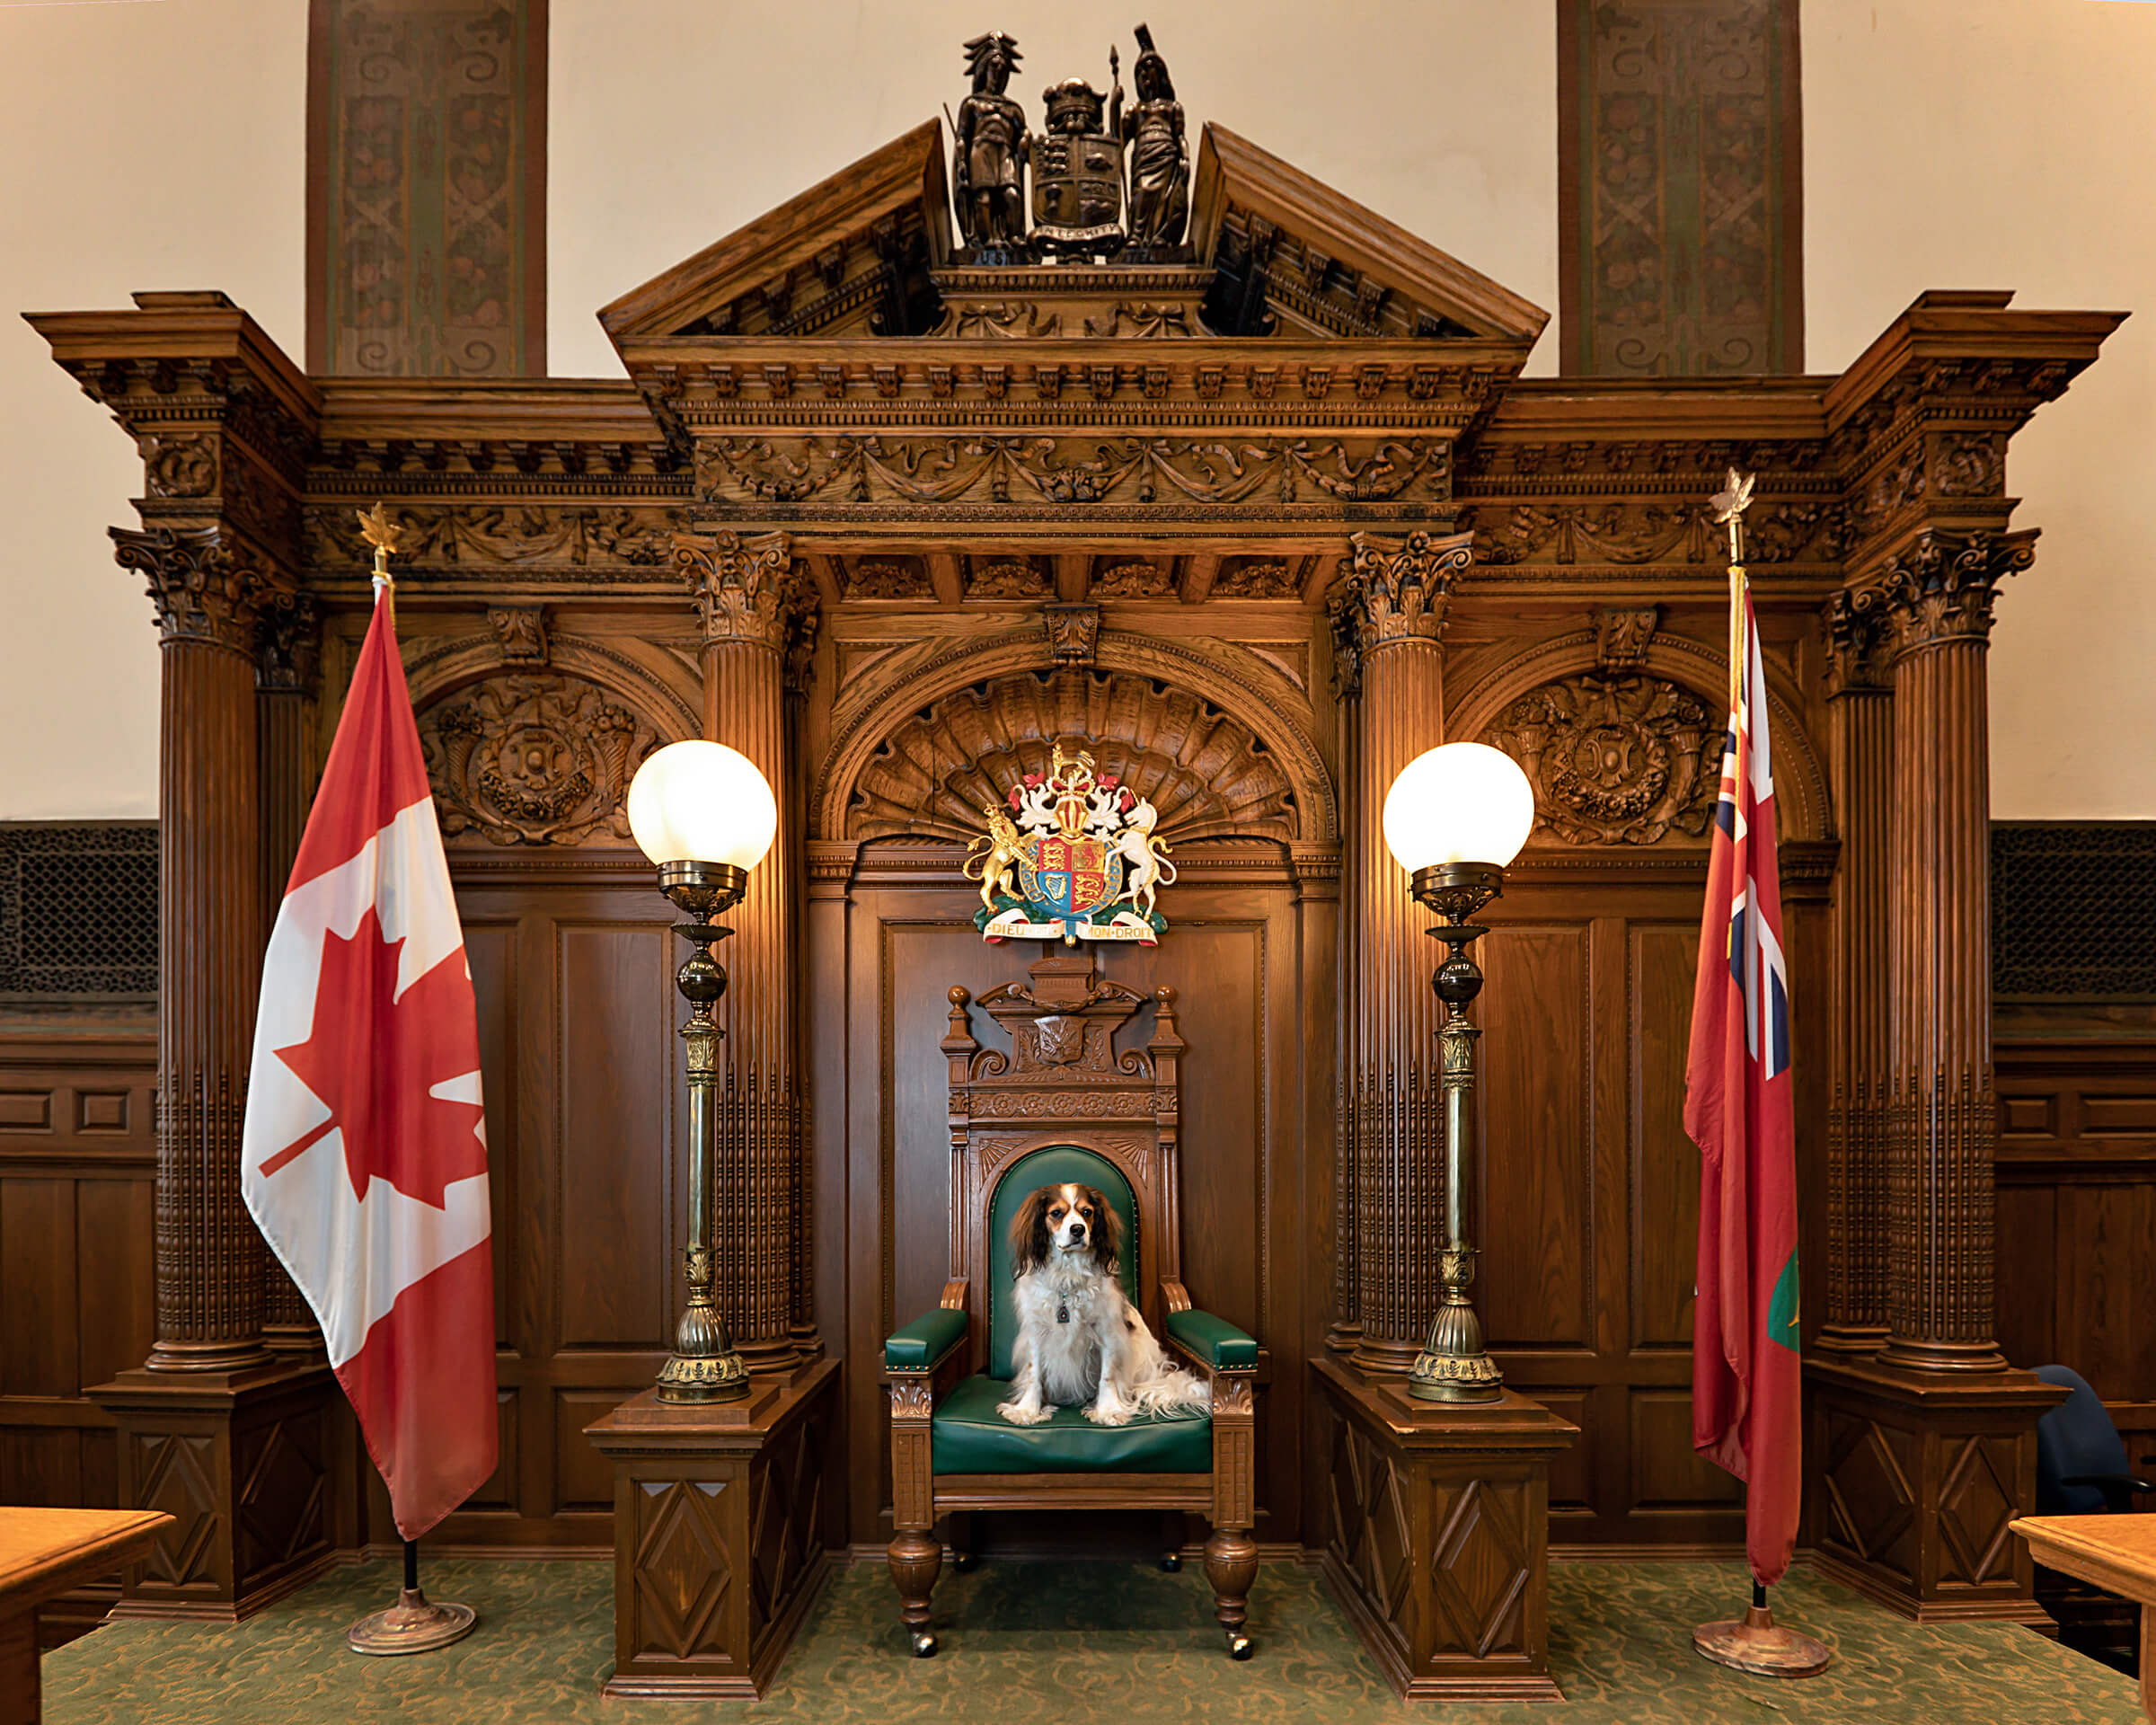 spaniel in Toronto old city hall courtroom 121